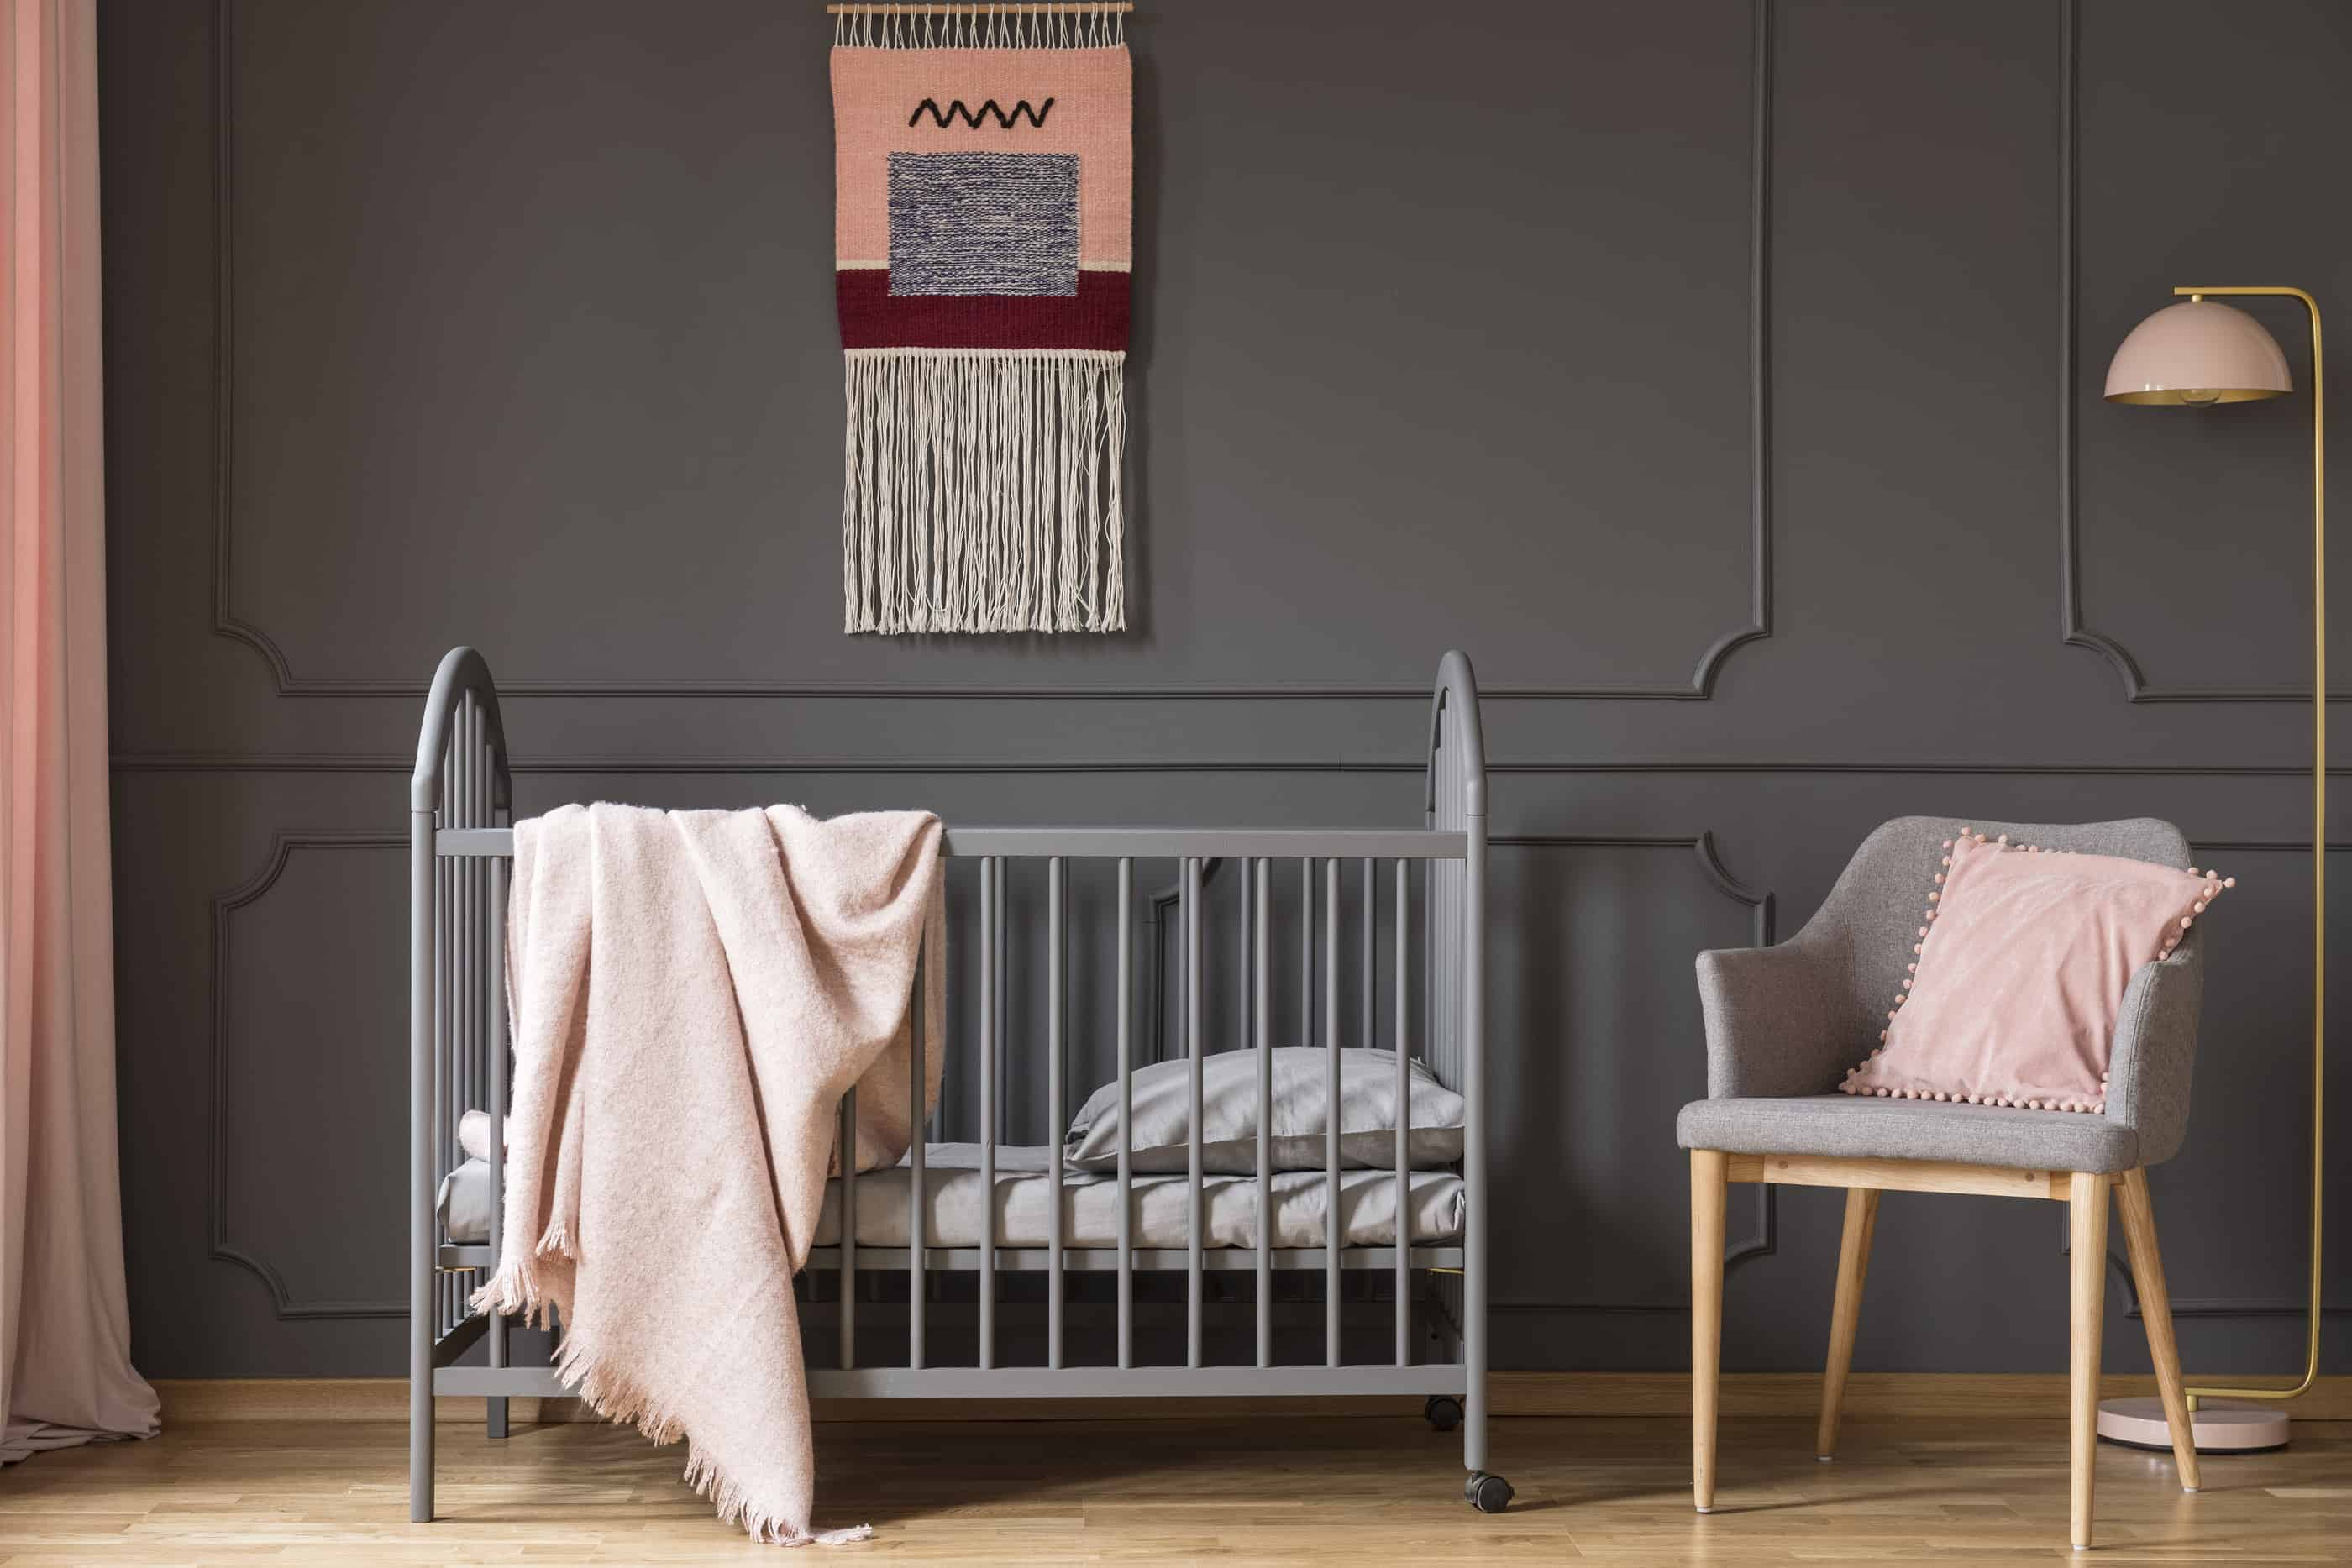 Baby girl's nursery with gray wall, crib, and sitting chair, with a soft, pink blanket draped over the crib